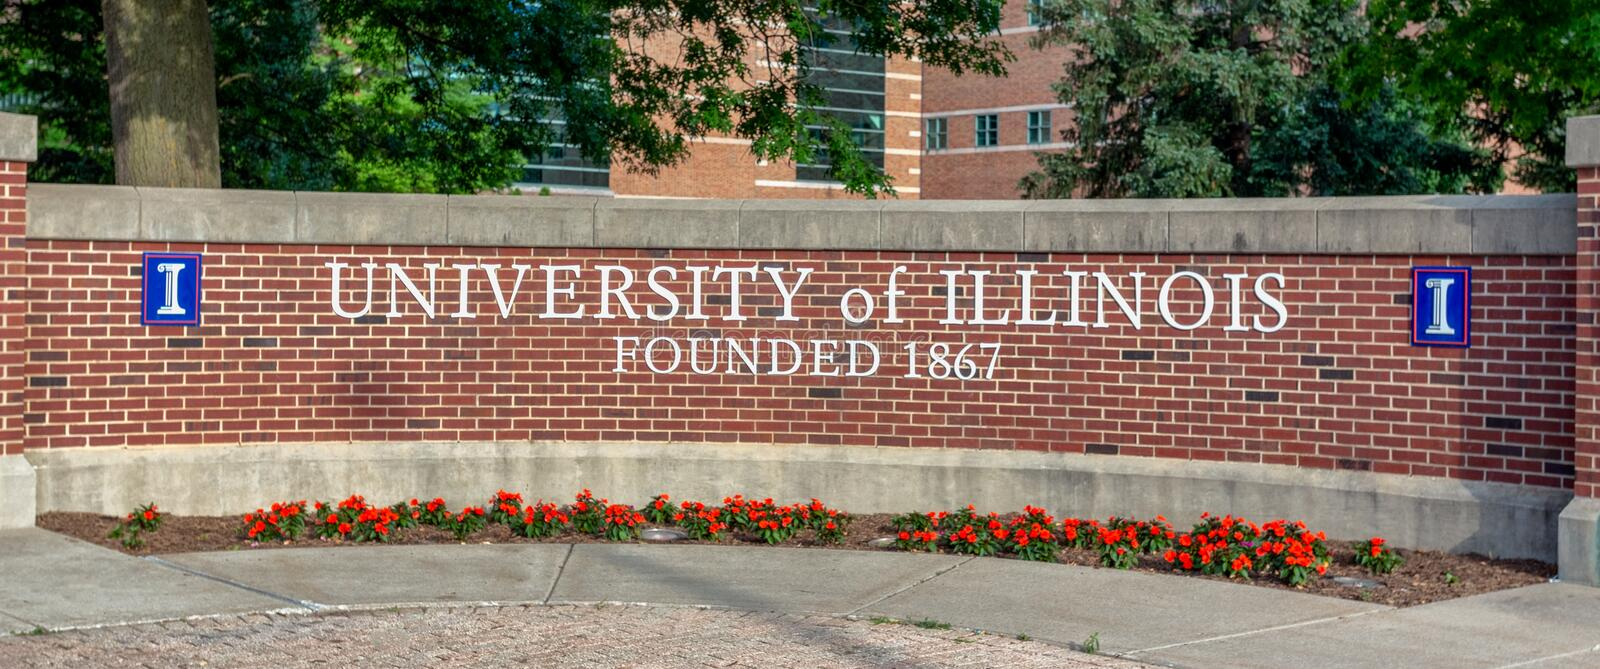 Entrance Sign to Univ ersity of Illinois. URBANA, IL/USA - JUNE 2, 2018. Entrance sign to the University of Illinois at Urbana–Champaign, a public stock photo